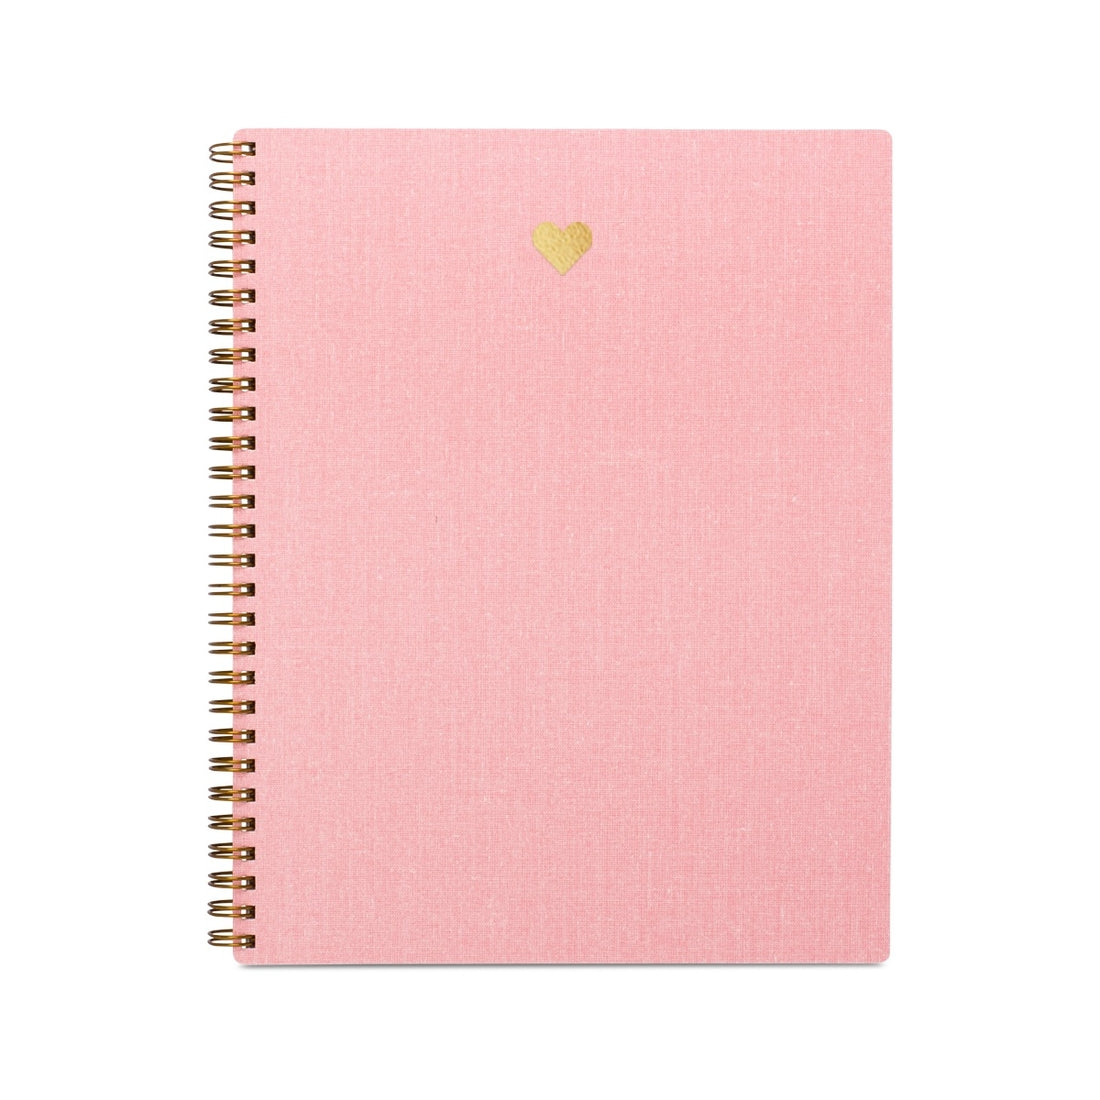 Blossom Pink Heart Notebook